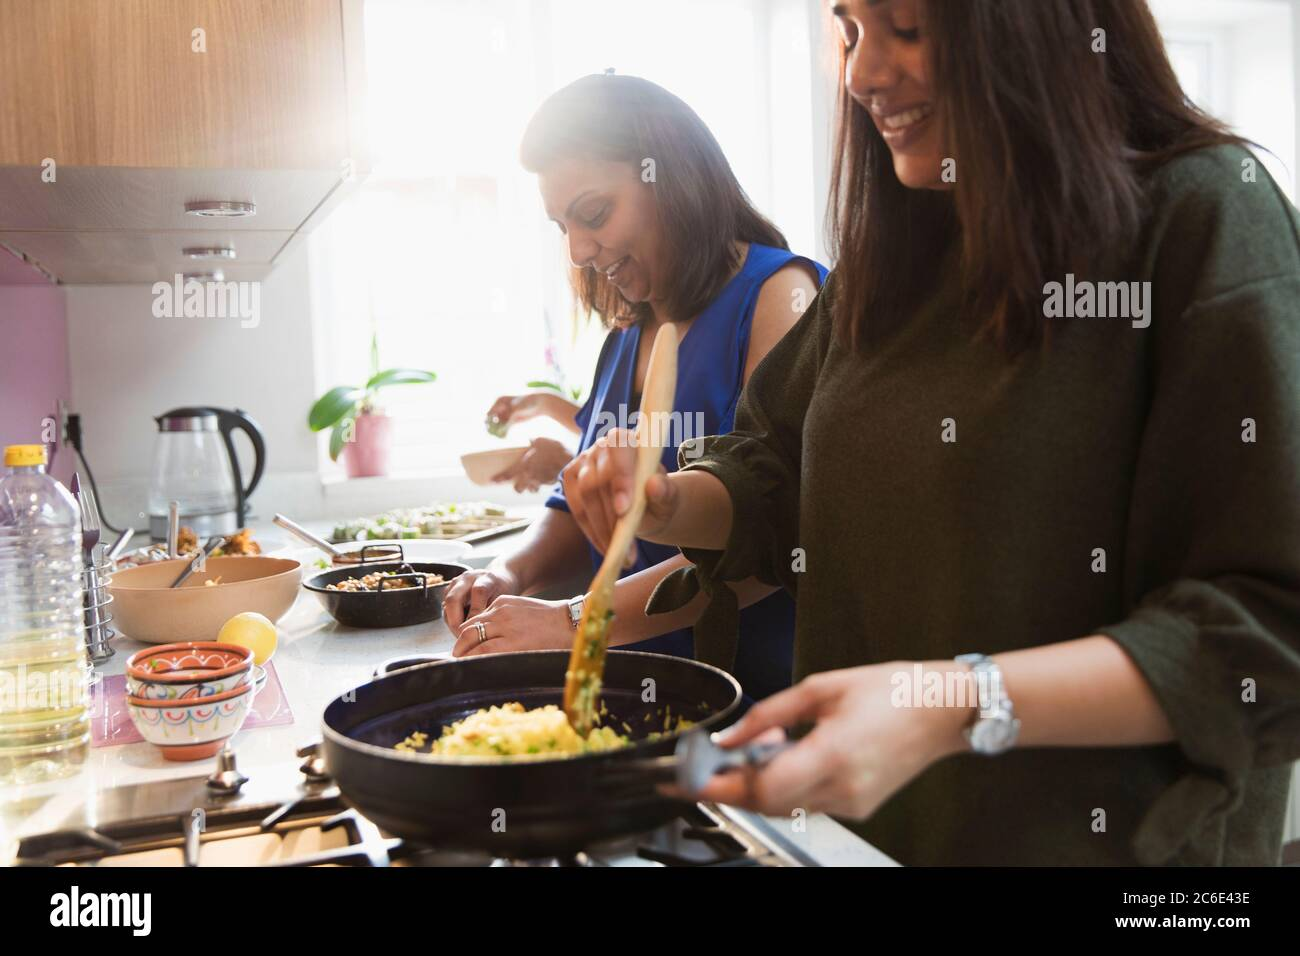 Indian women cooking food in kitchen Stock Photo